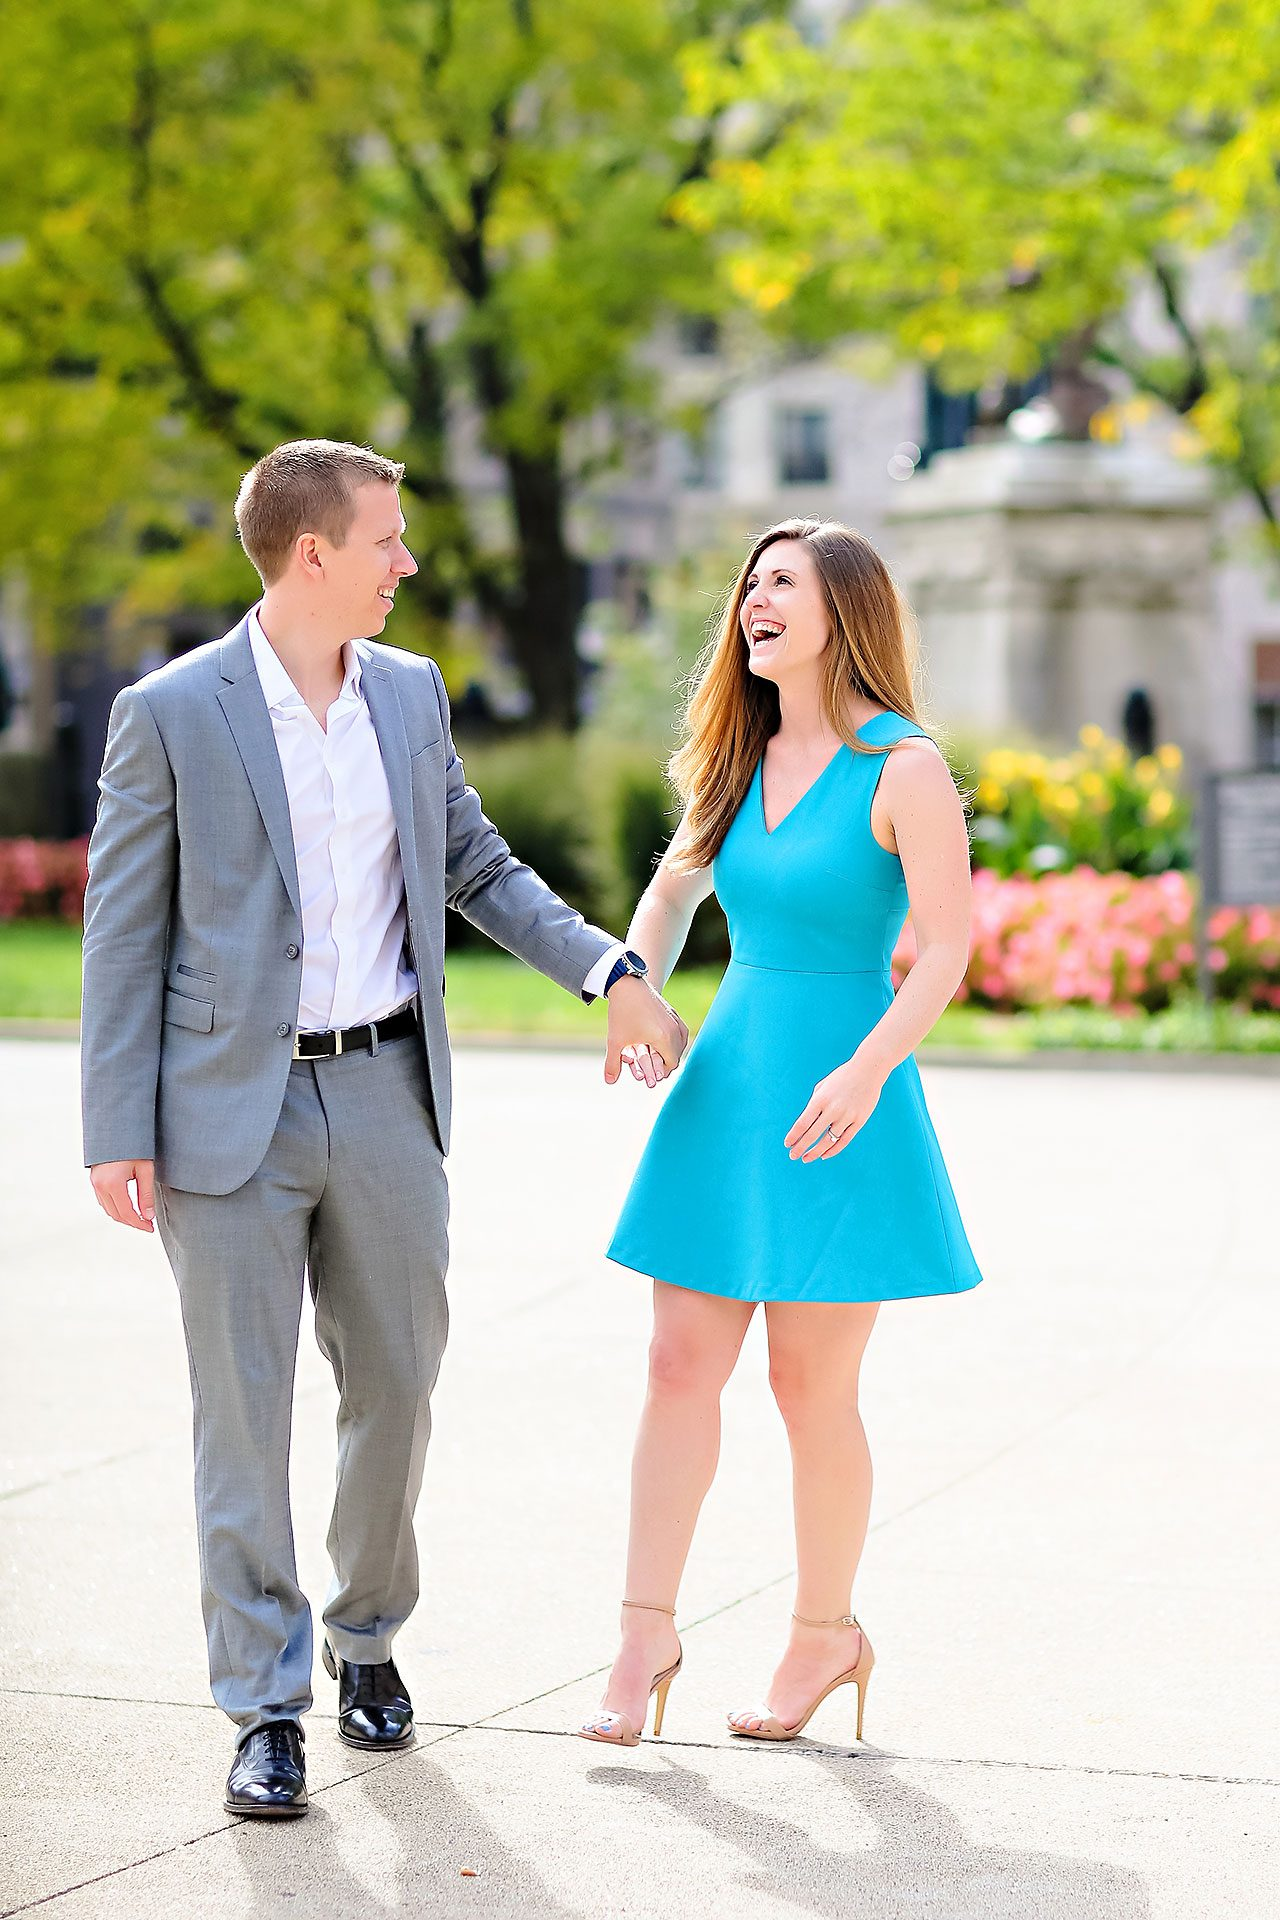 Chelsea Jeff Downtown Indy Engagement Session 028